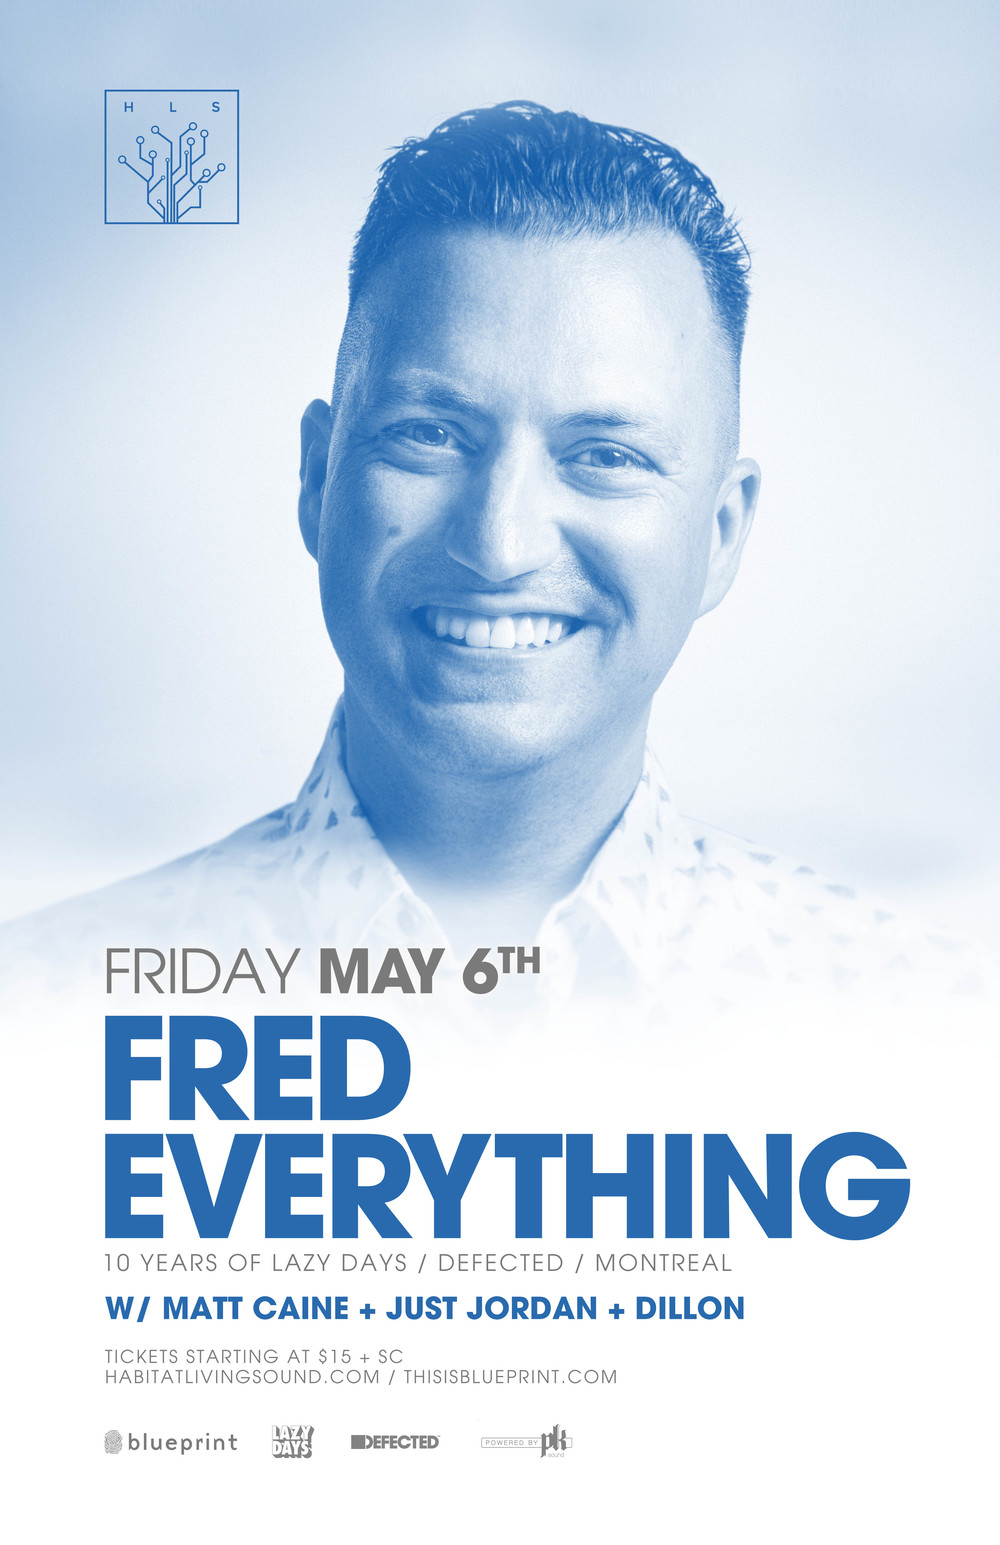 fred-everything-habitat-living-sound